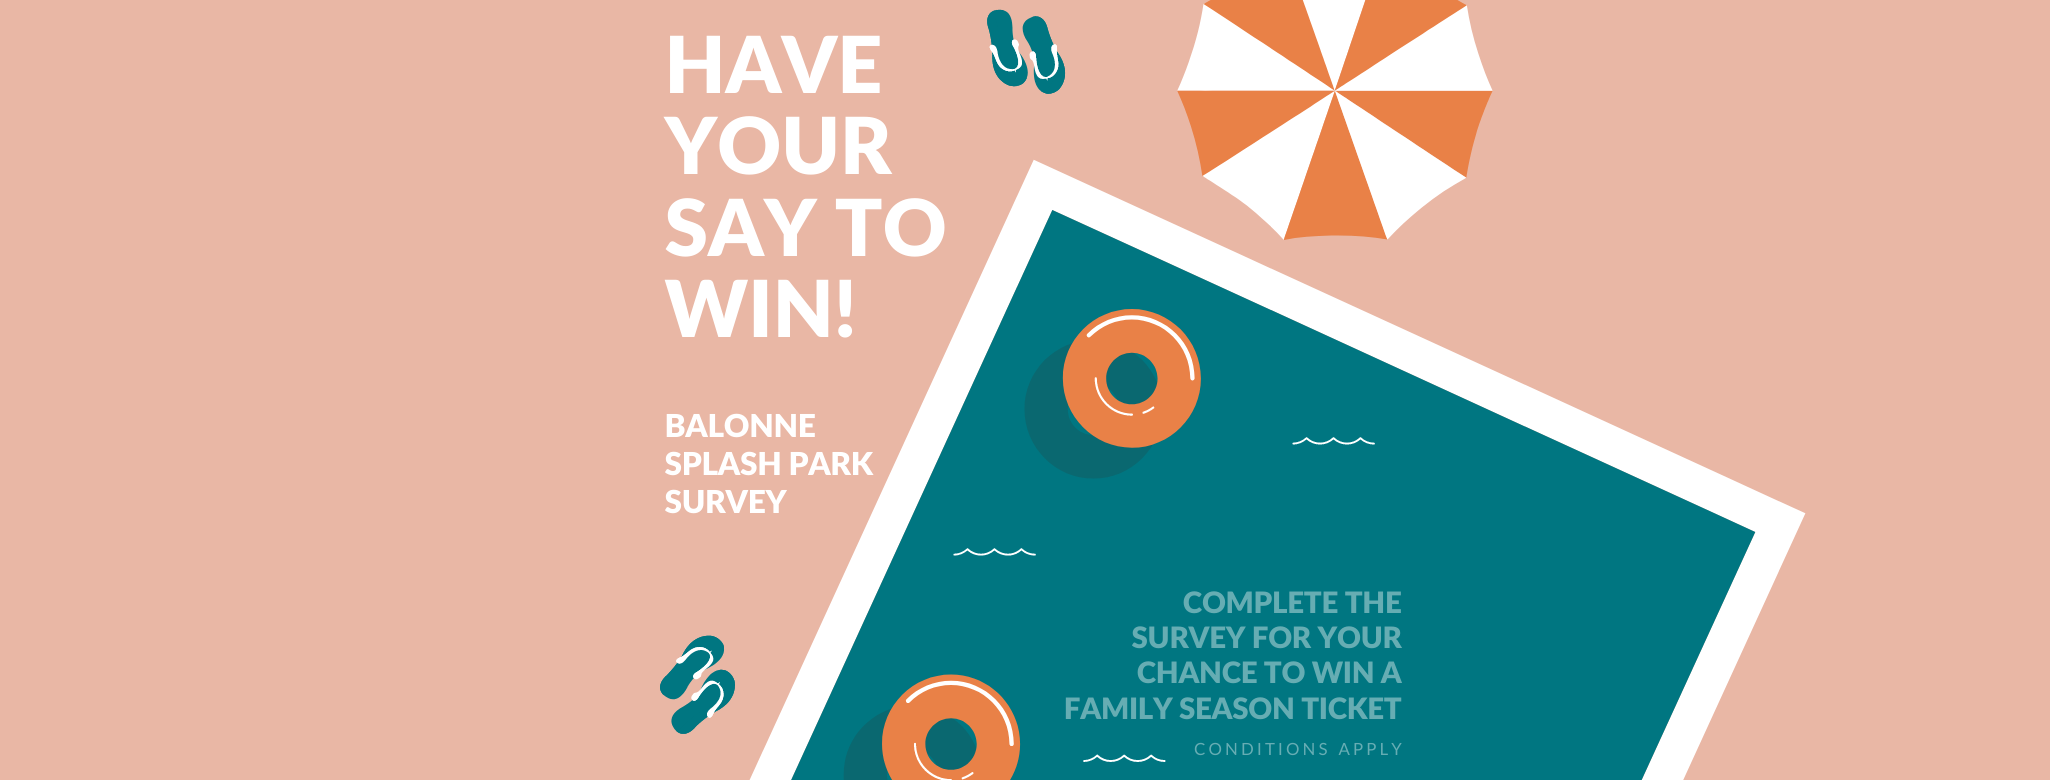 Bsc splash park survey